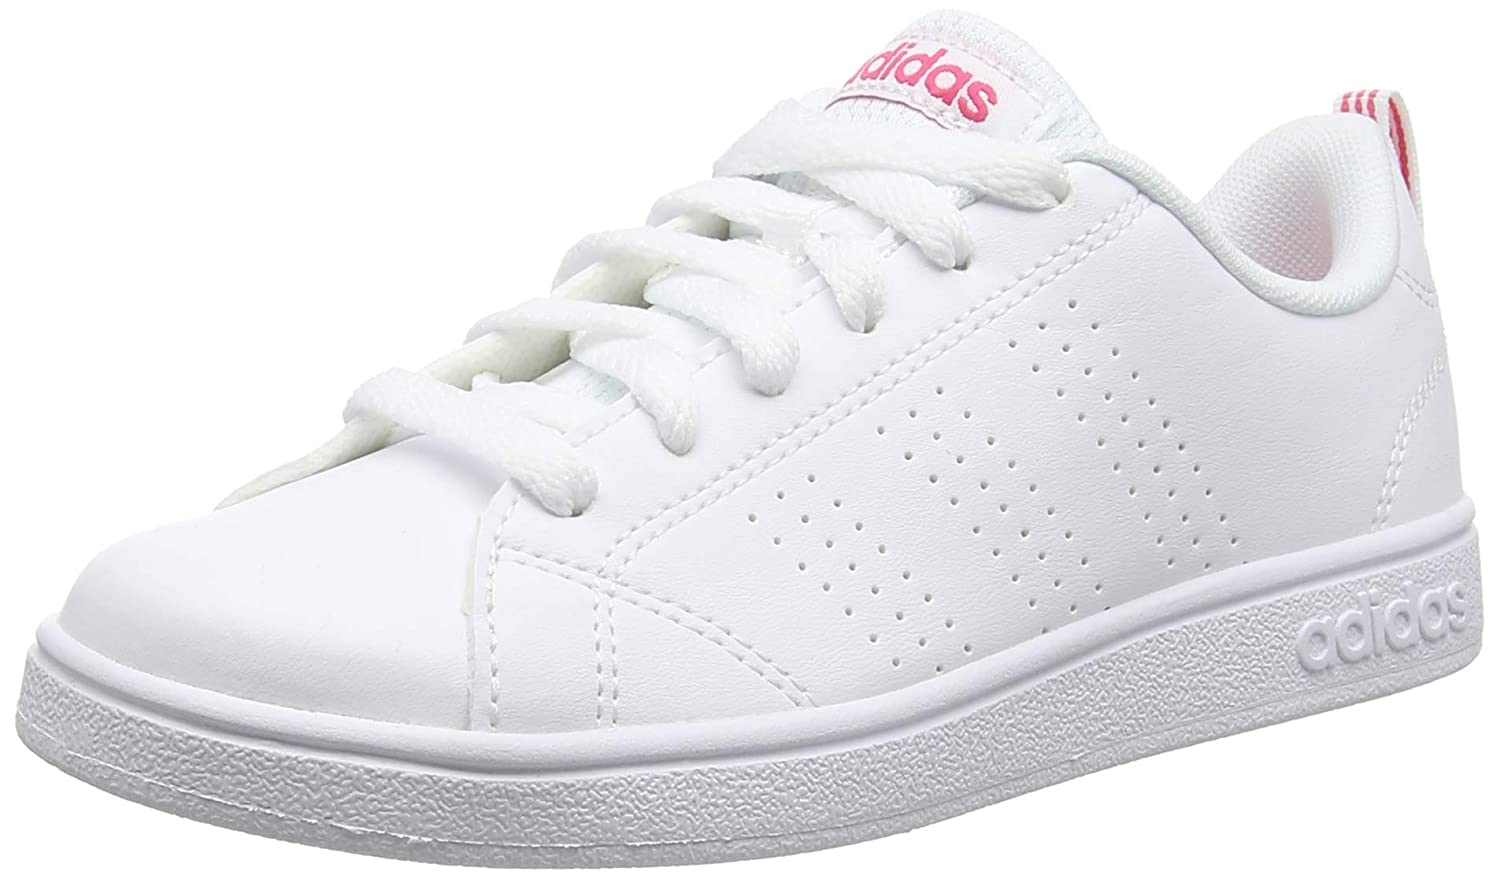 buy popular 49b62 8182d adidas Vs Advantage Cl K, Zapatillas de Deporte Unisex Niños Amazon.es  Zapatos y complementos